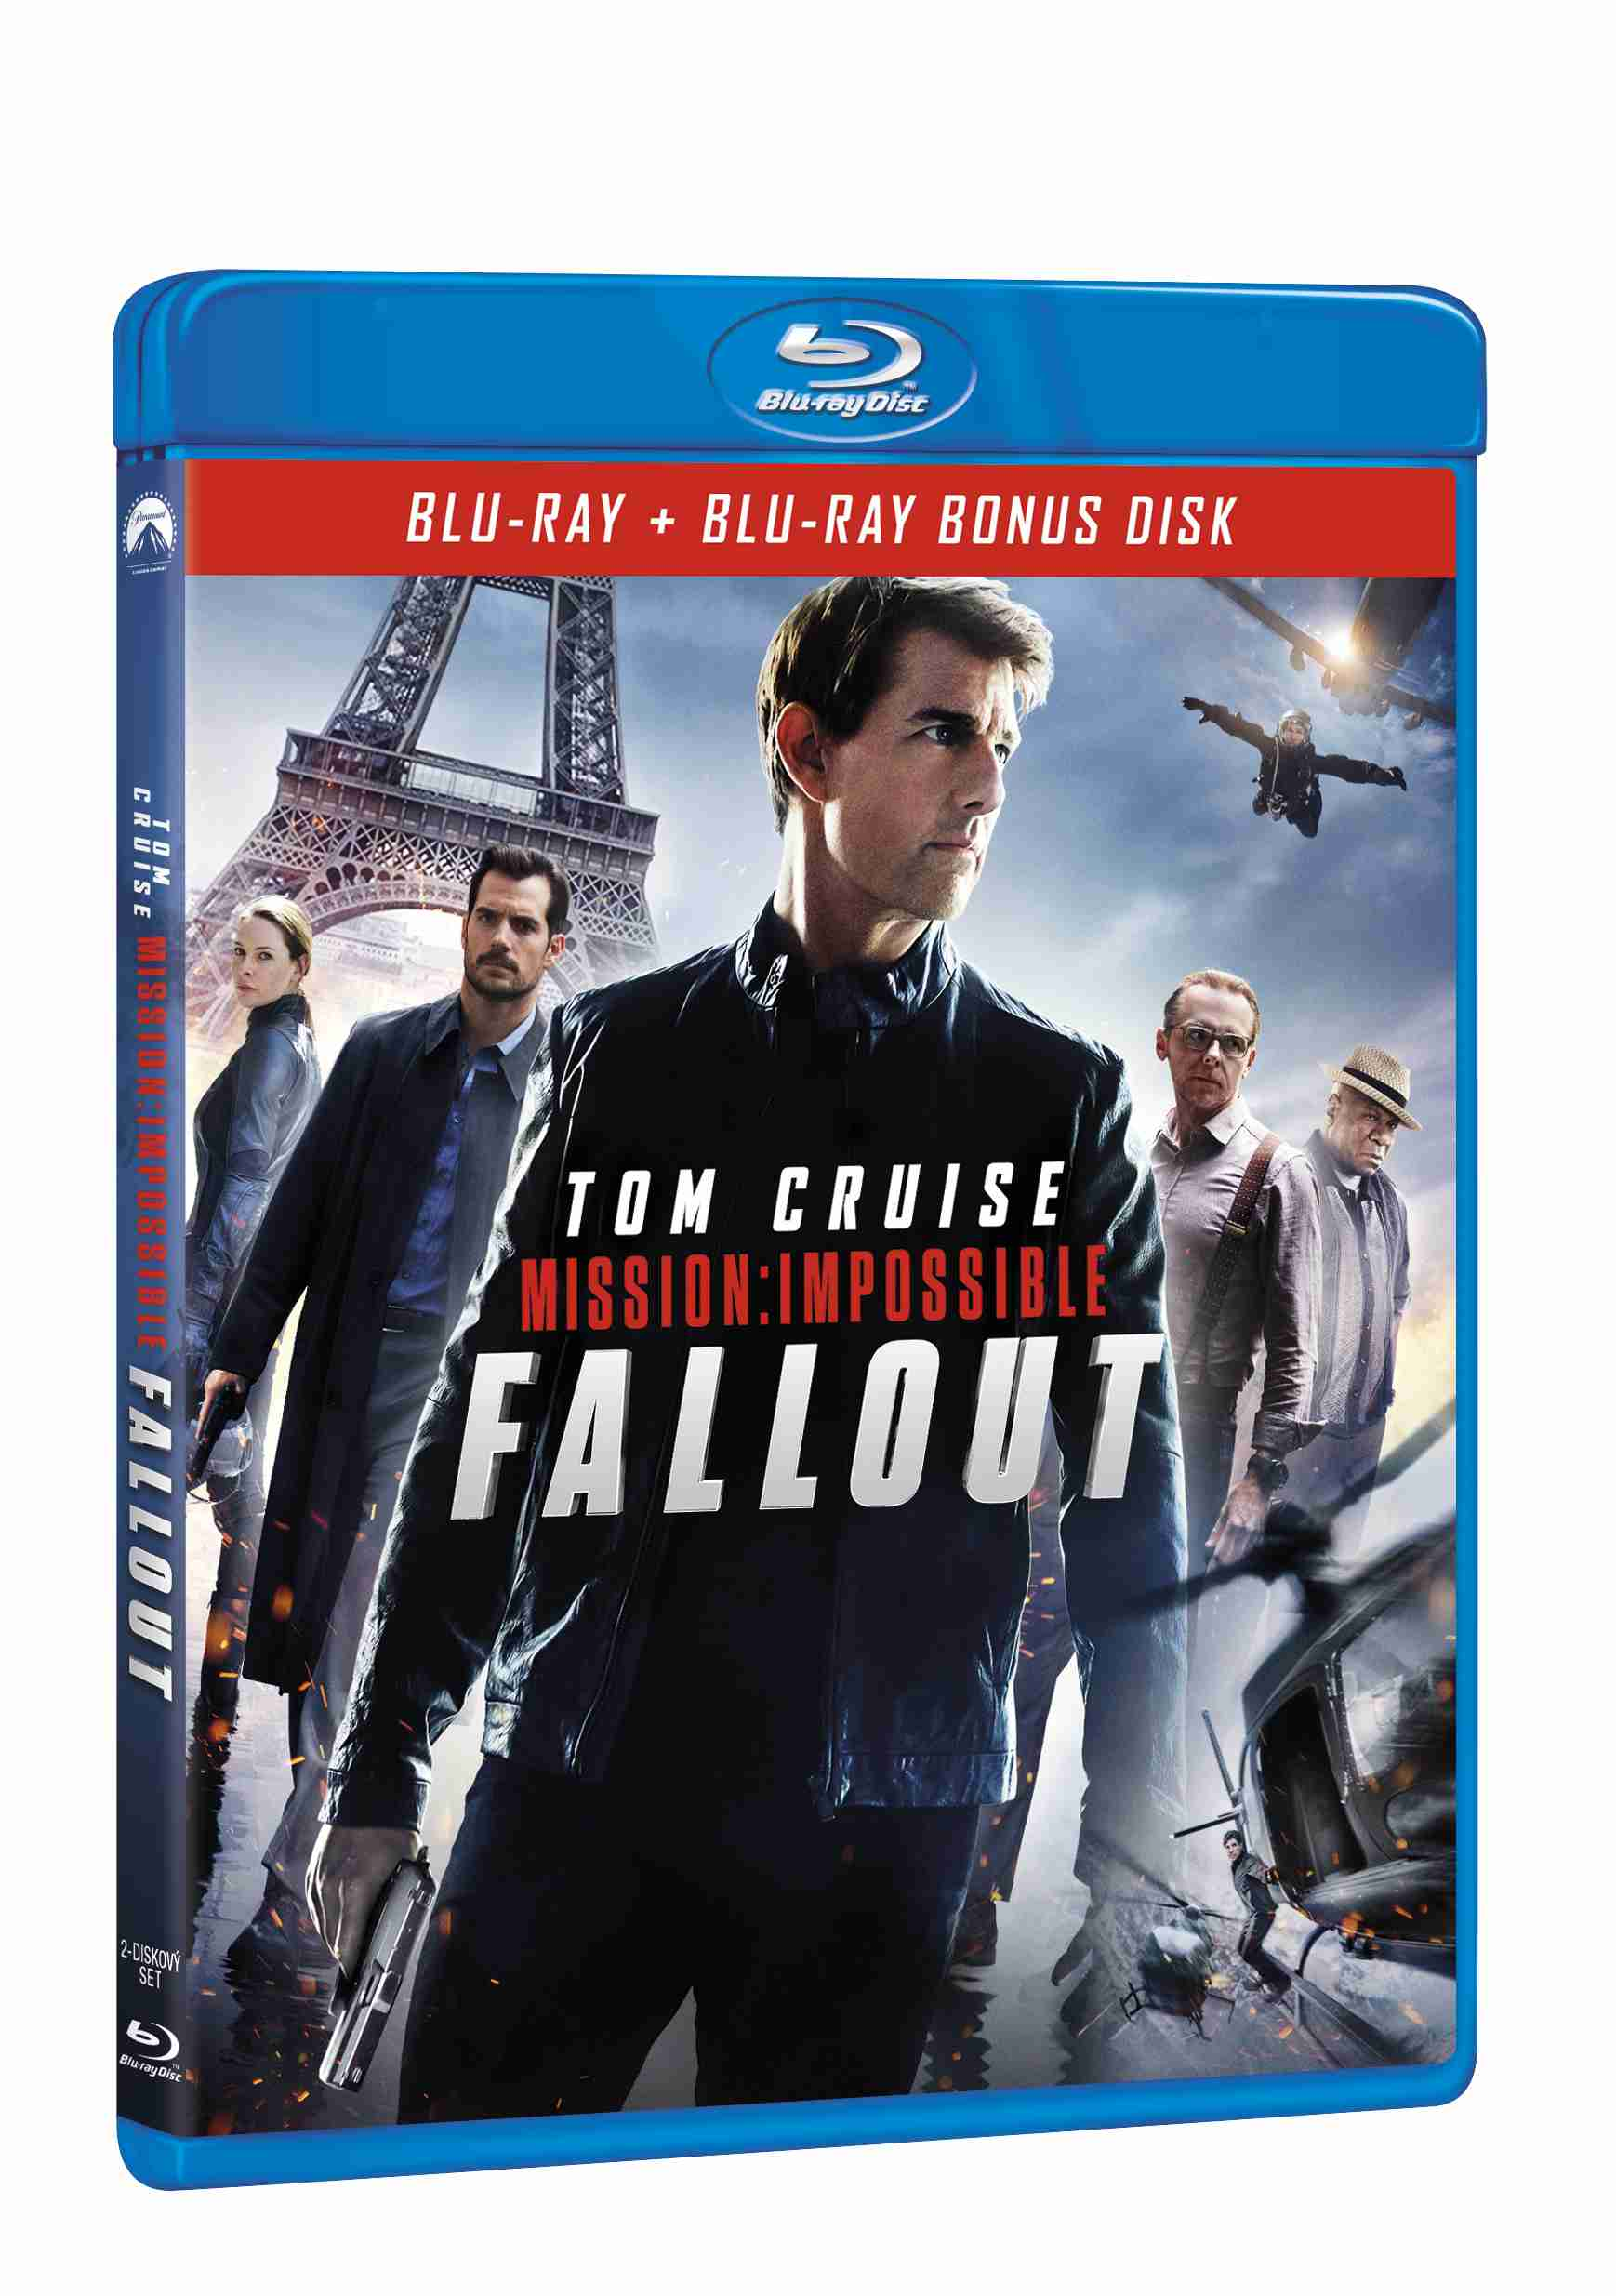 Mission: Impossible - Fallout - Blu-ray + Bonus Disk